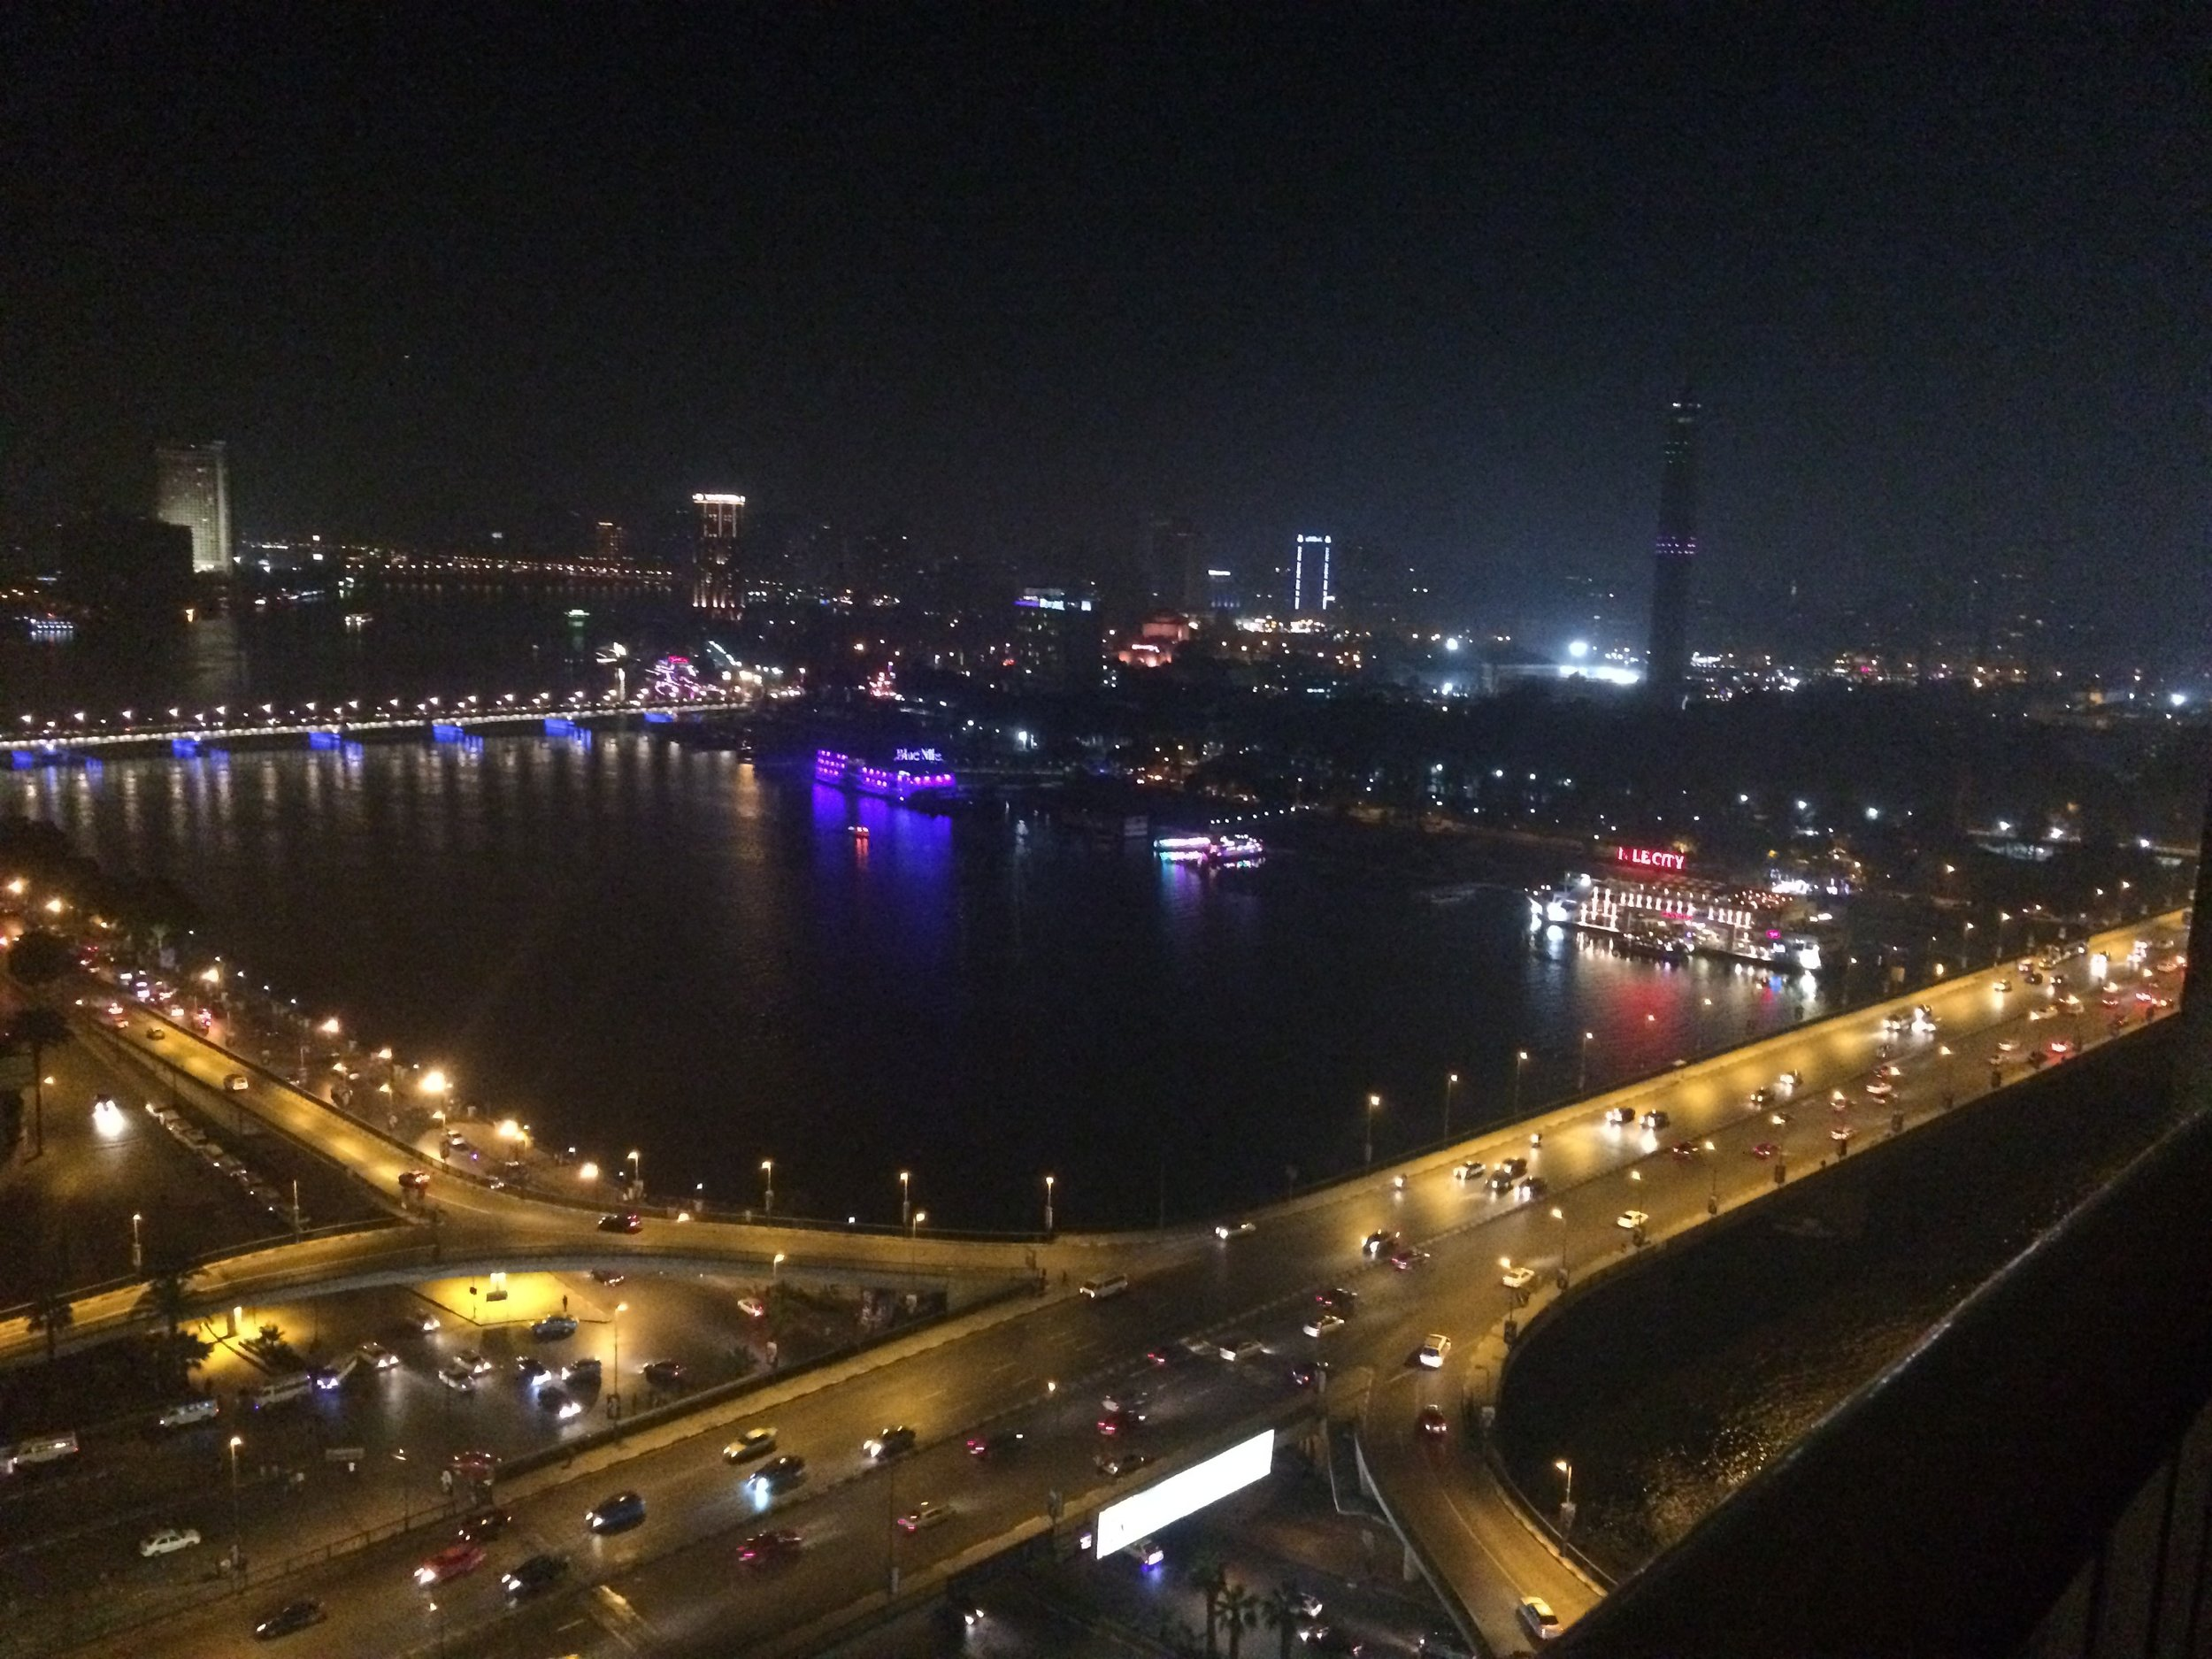 Night view of Nile